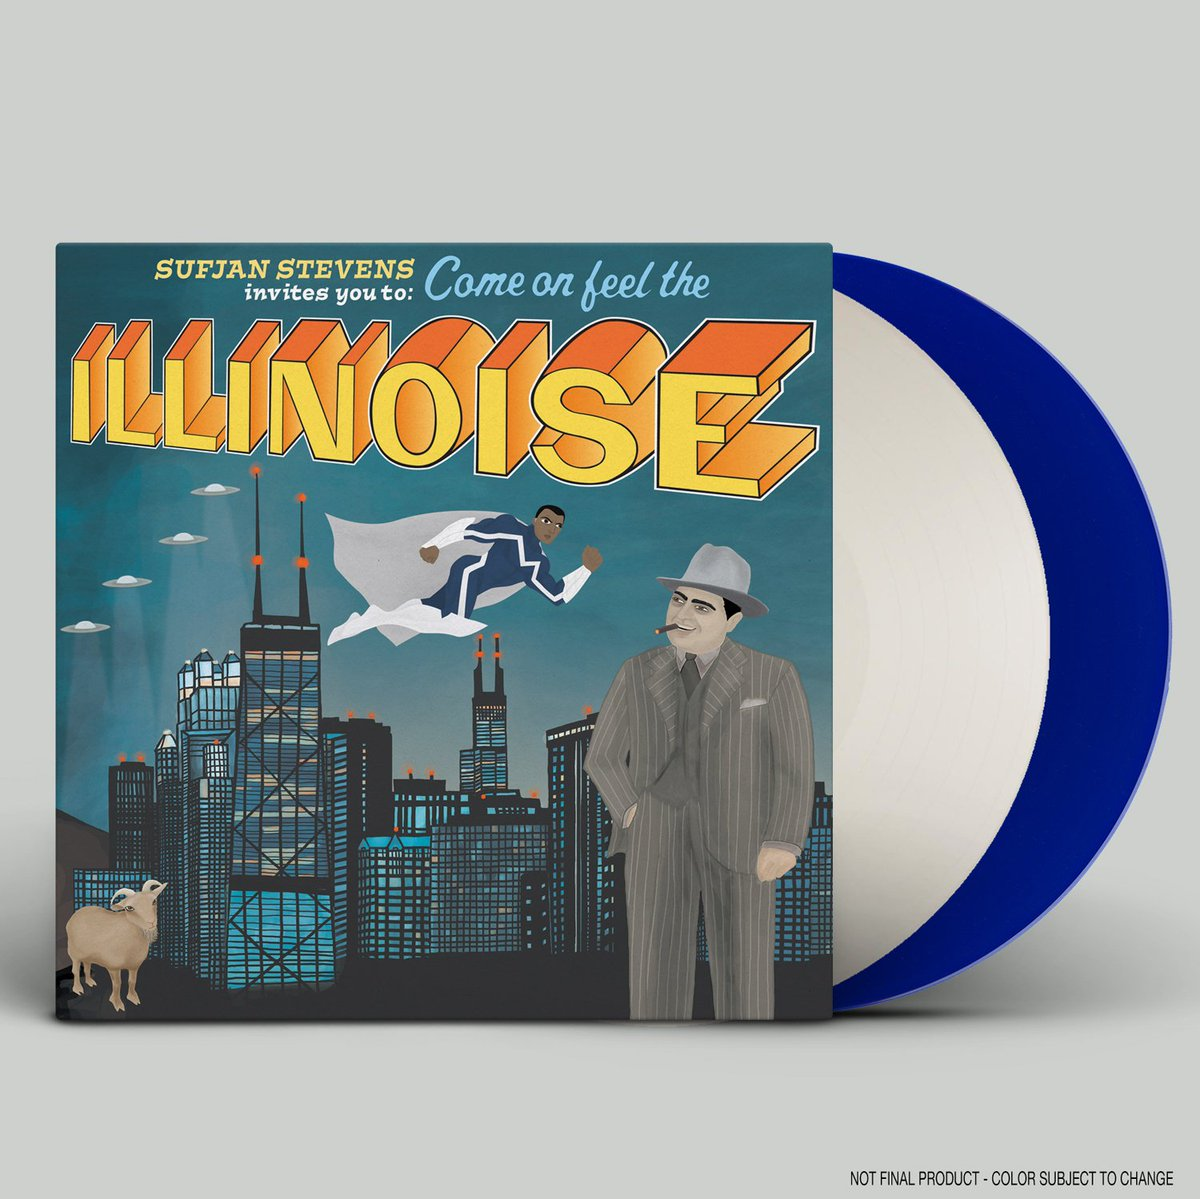 Just announced a 10th anniversary vinyl edition of Sufjan's Illinois. Hint: it has a special surprise from @Marvel https://t.co/gprDTdWKgU